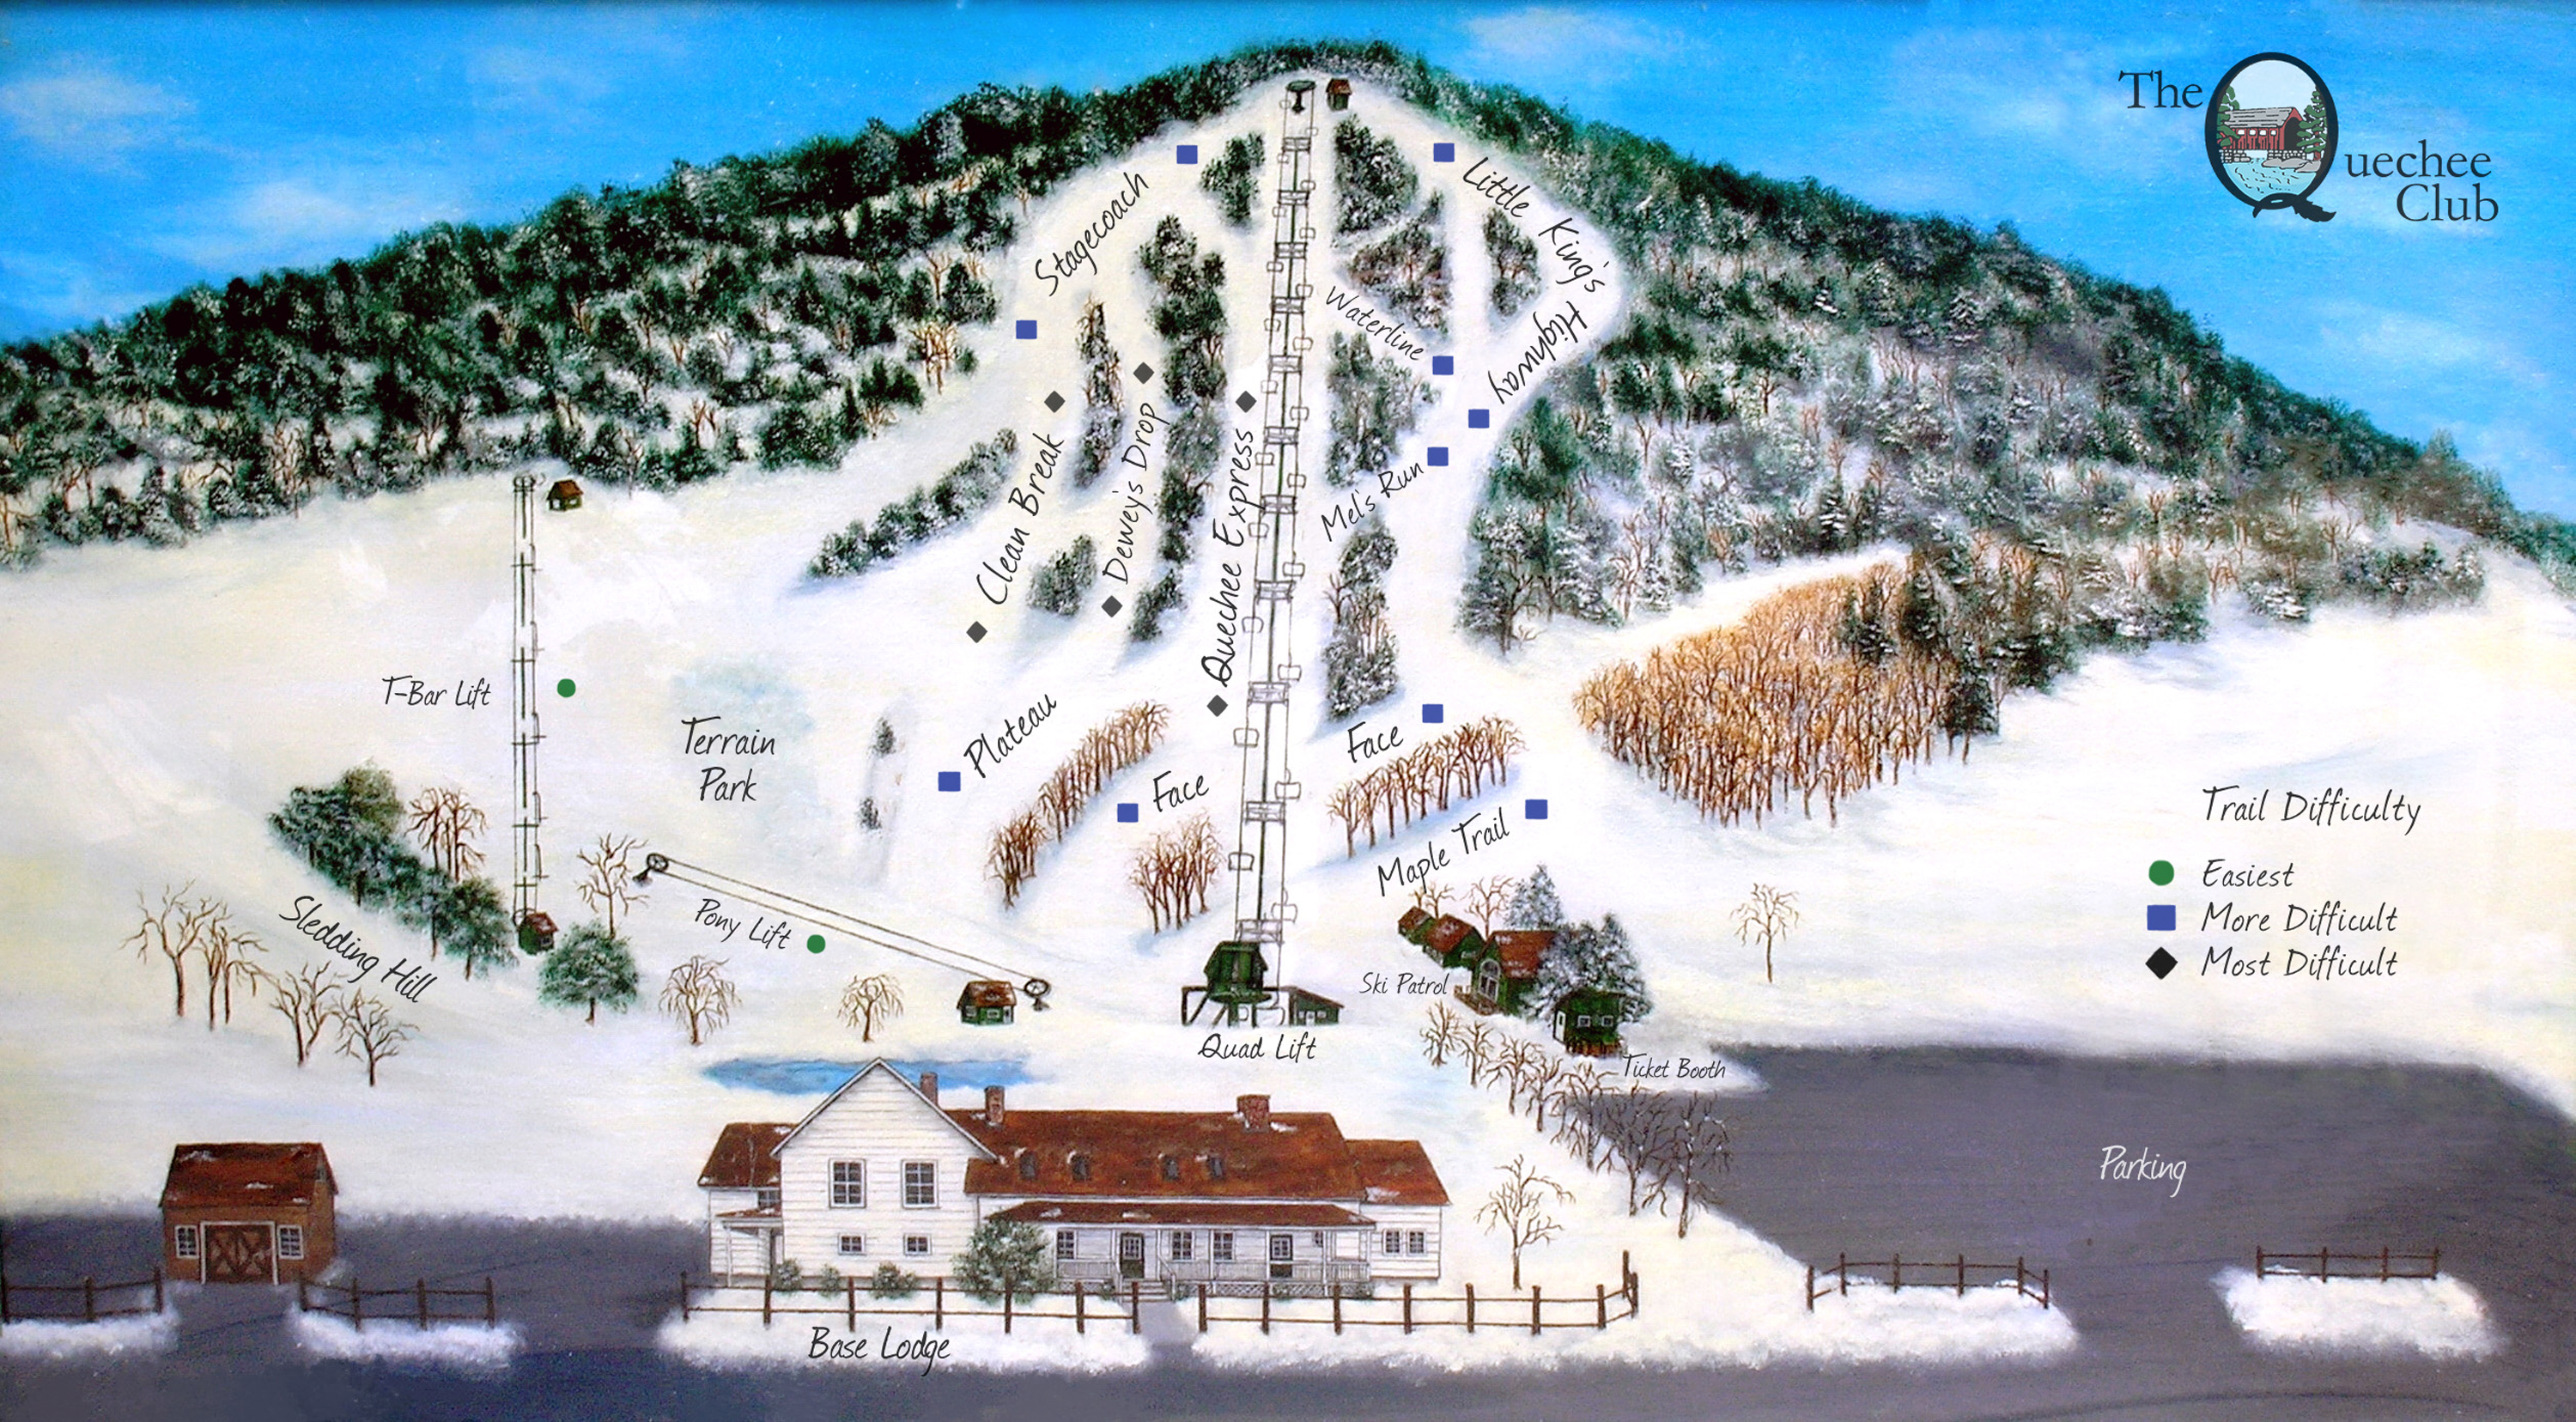 Ski Report, Ski Weather, Snow Conditions Worldwide - The Quechee Club